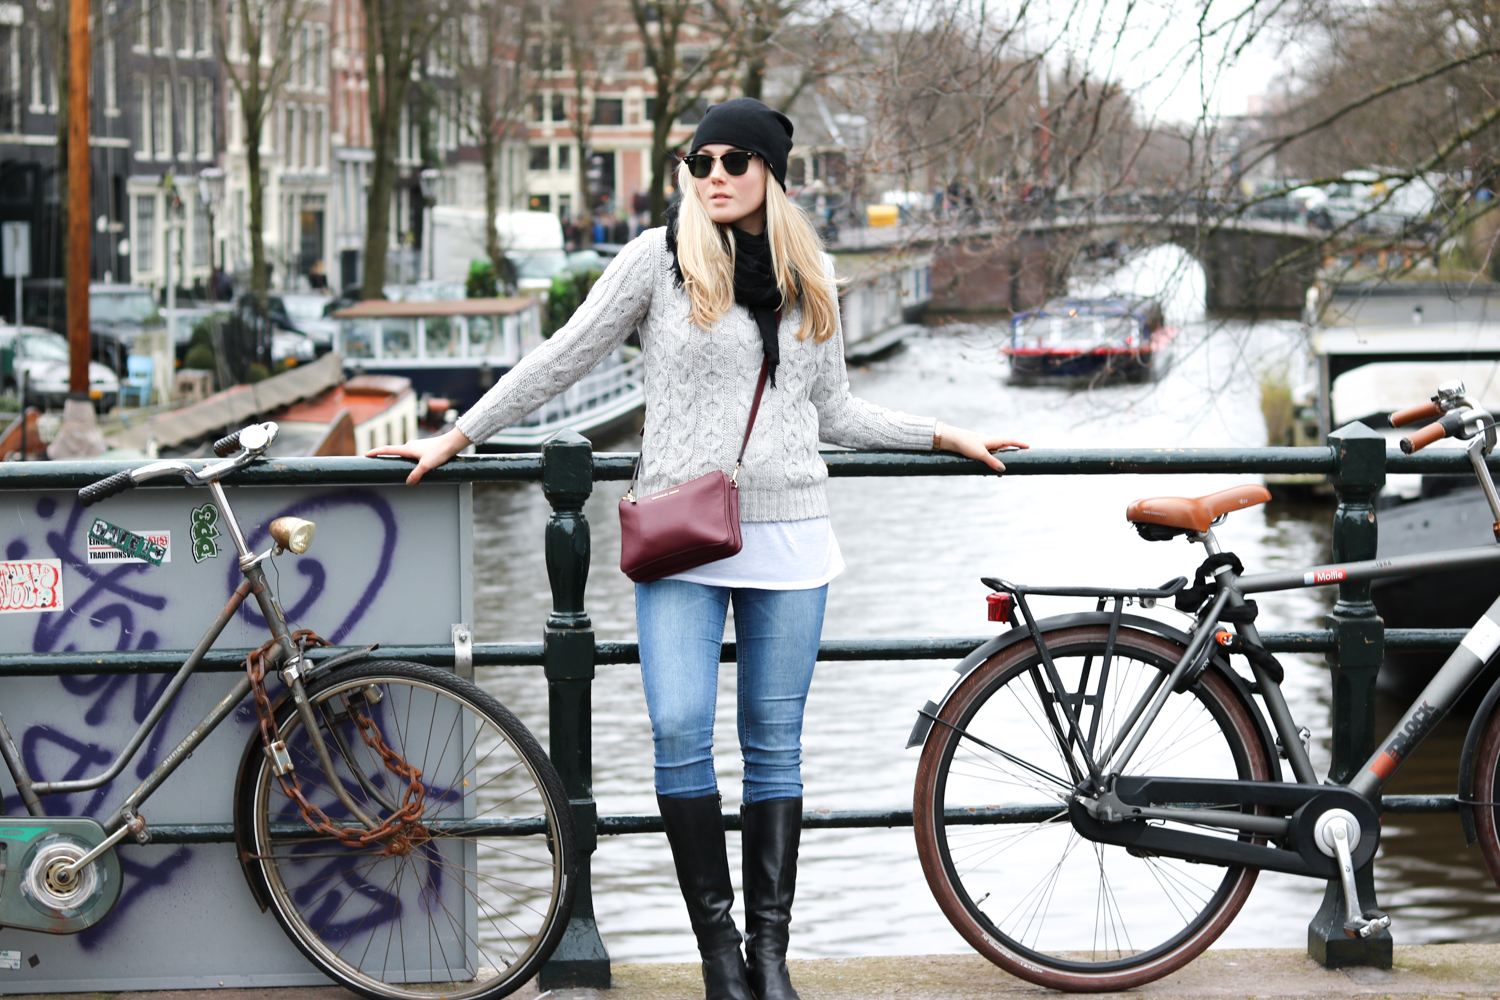 Bits and Bobs by Eva, Blog, Austrian Blog, Österreichische Blog, lovedailydose, your daily treat, fashion, beauty, food, interior, fitness, new, bitsandbobsbyeva.com, travel, winter, März, Amsterdam, Travel Diary, Outfit, City Outfit, Amsterdam Outfit, Netherlands